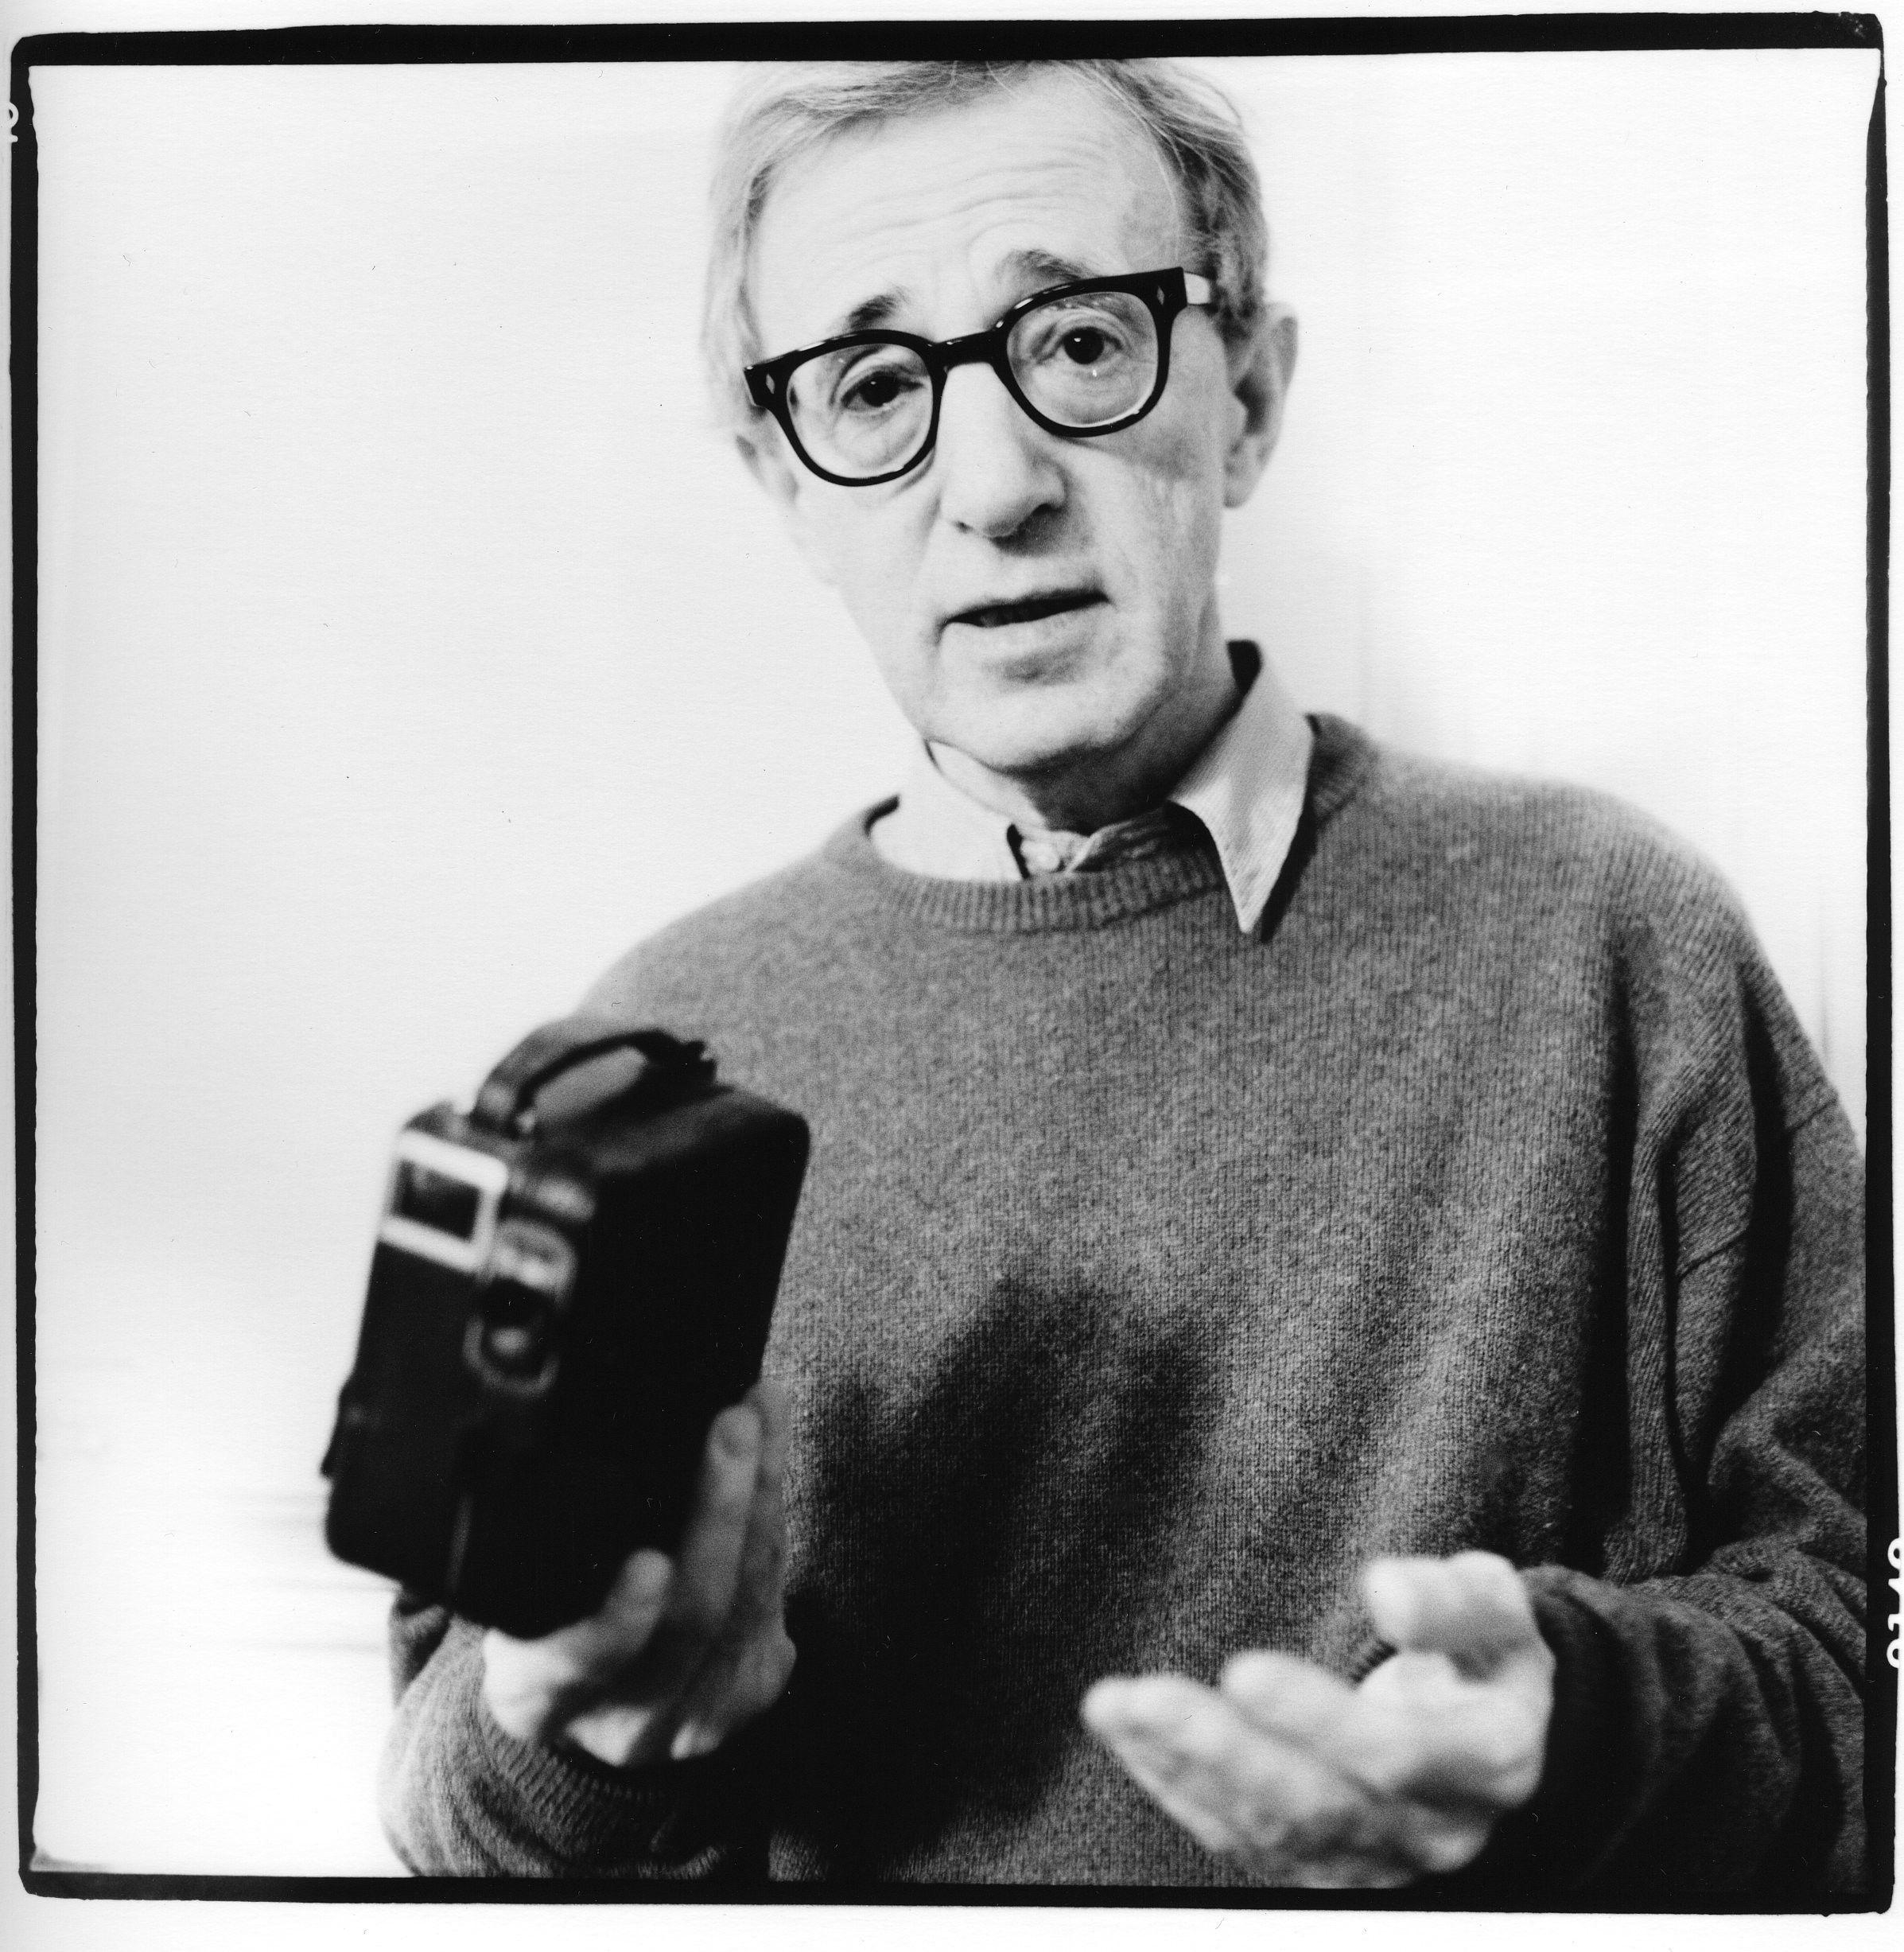 men, Film Directors, Actor, Woody Allen, Monochrome, Glasses ...